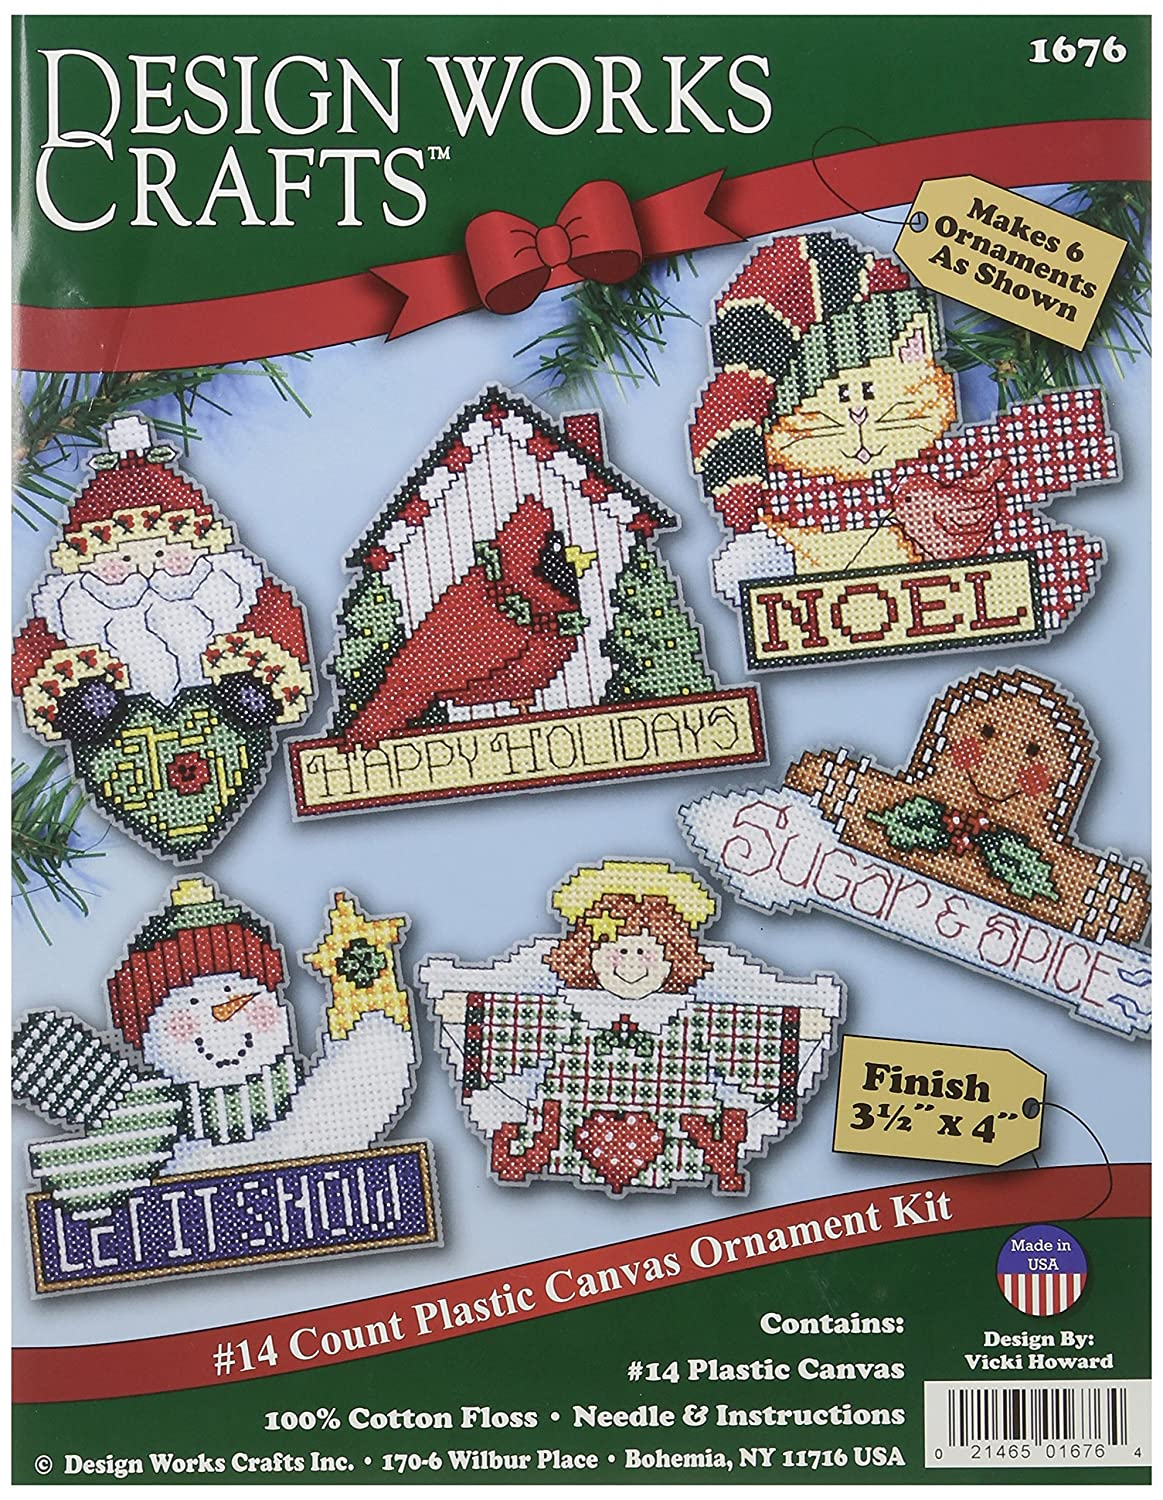 Tobin DW1676 Signs of Christmas Ornaments Counted Cross Stitch Kit, 3-1/2 by 4-Inch, 14 Count